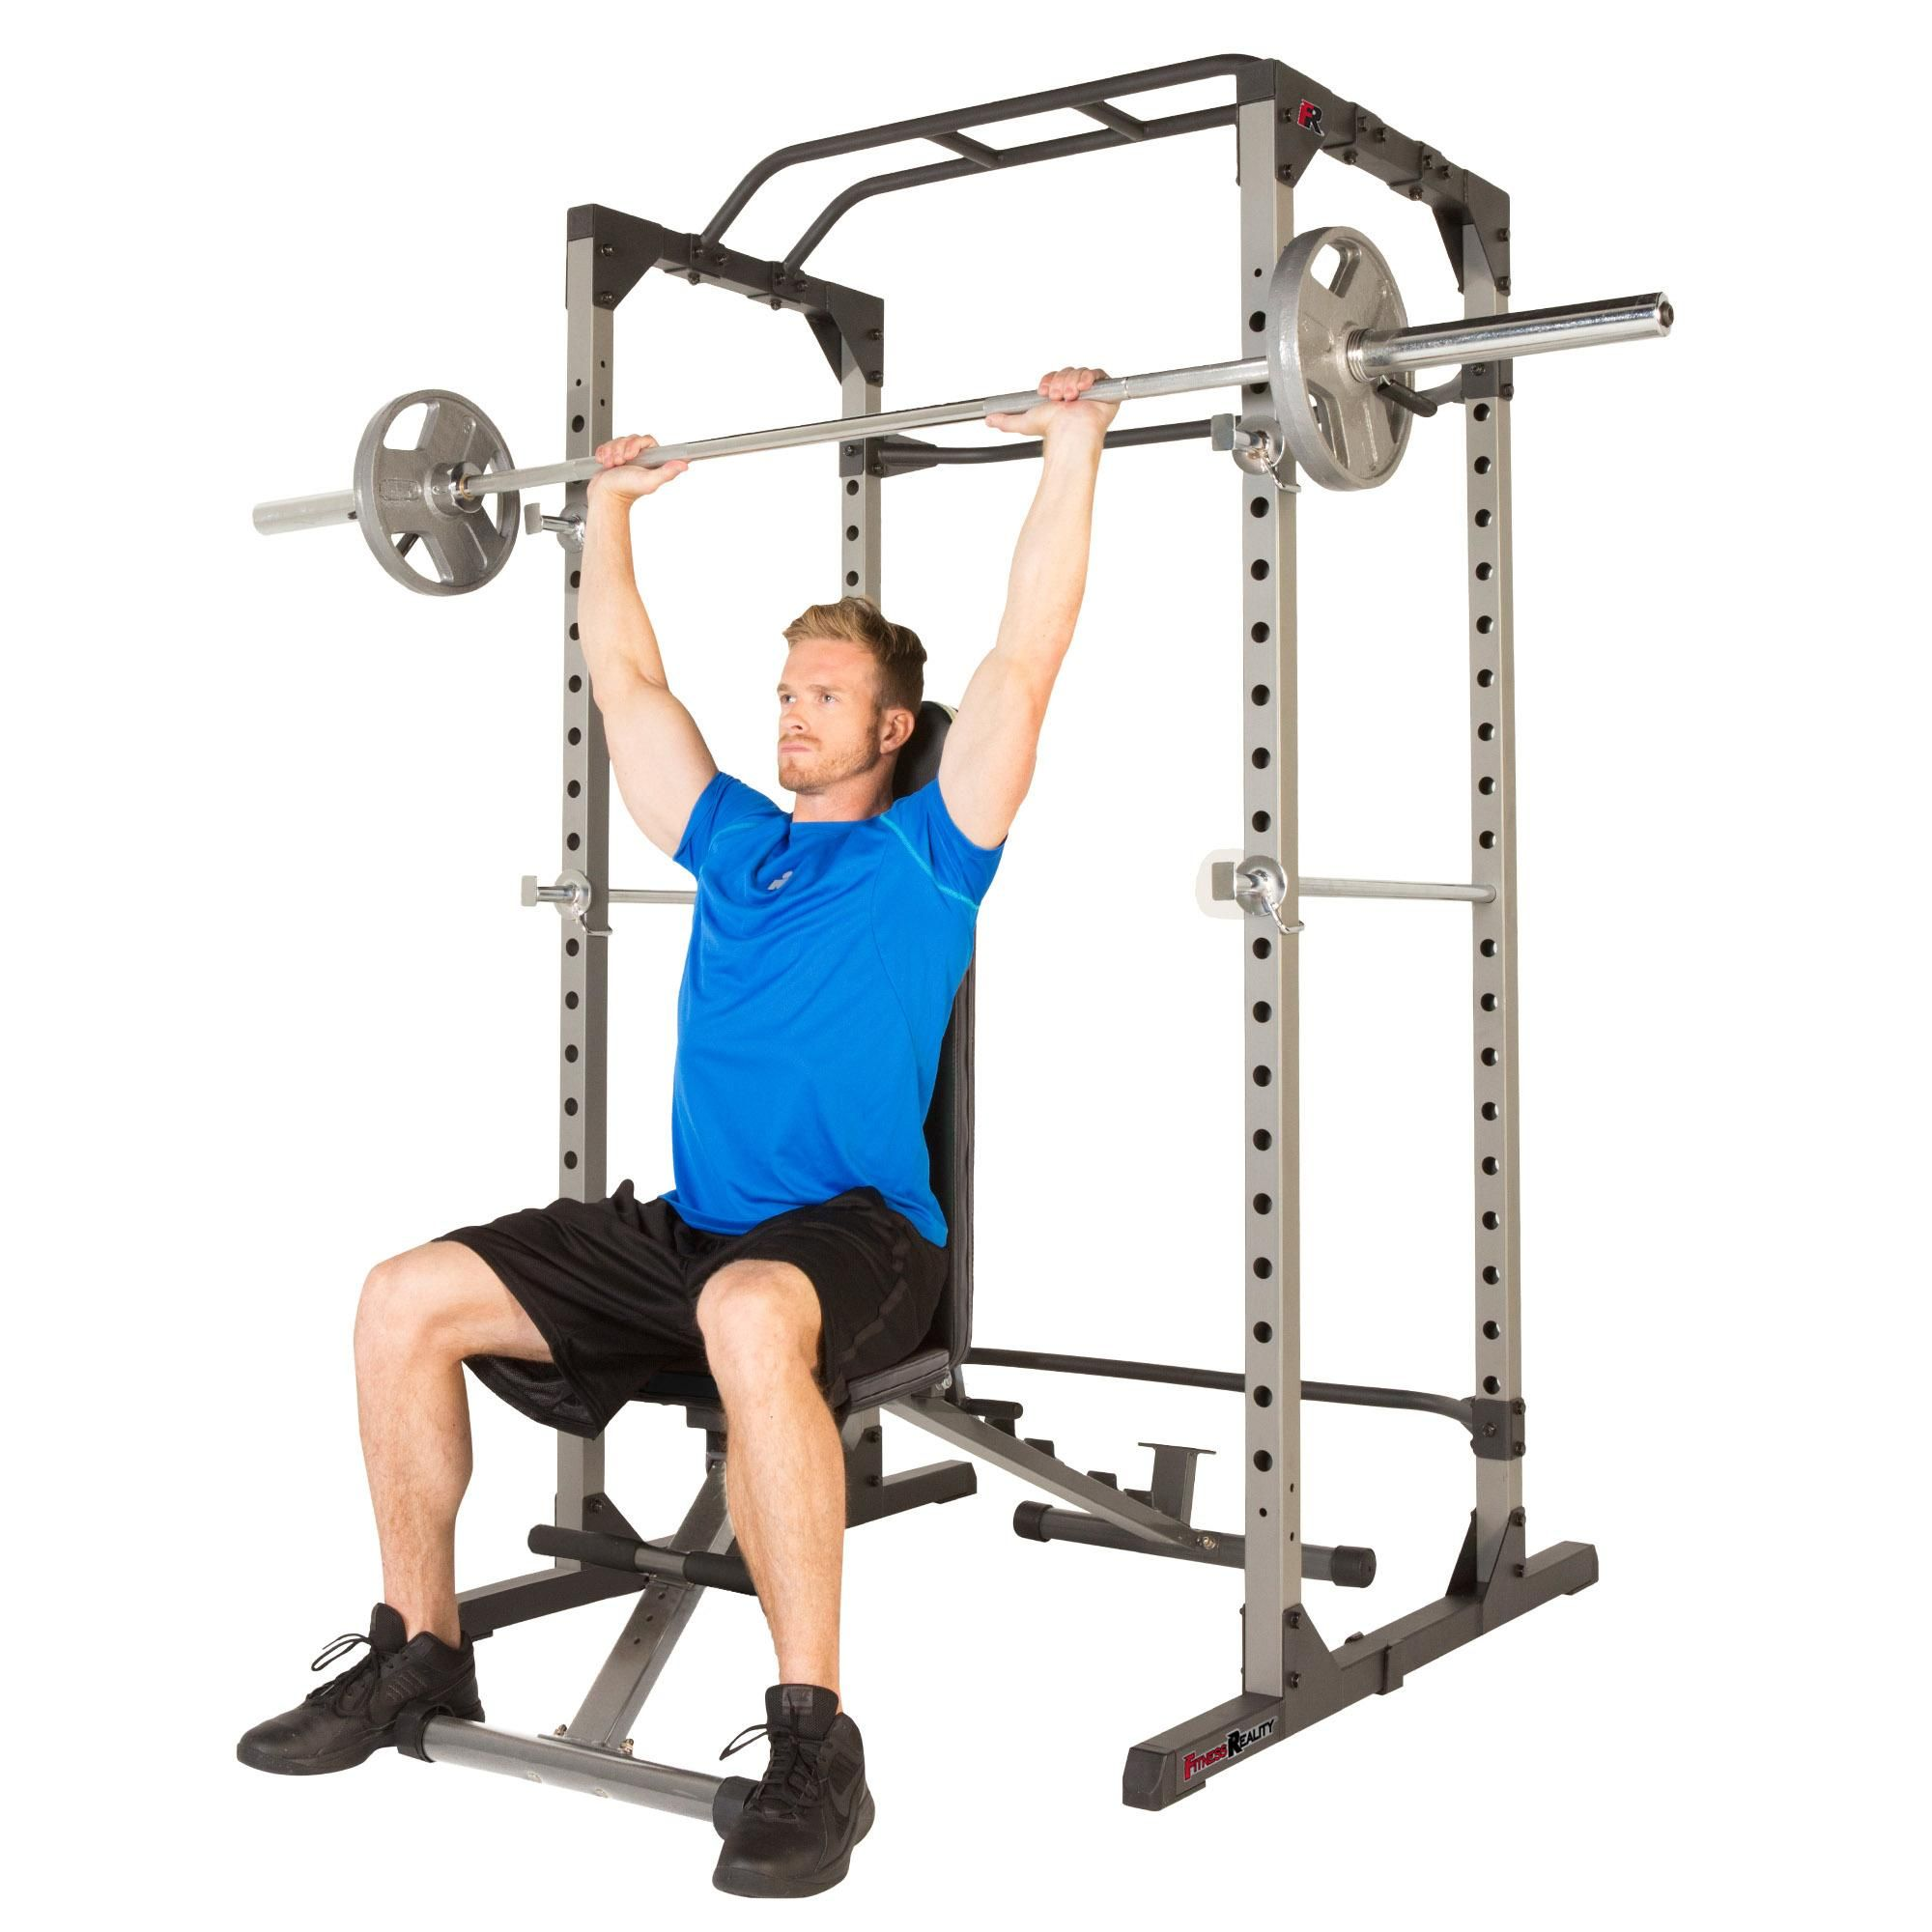 FITNESS REALITY 810XLT Super Max Power Cage with 800lbs